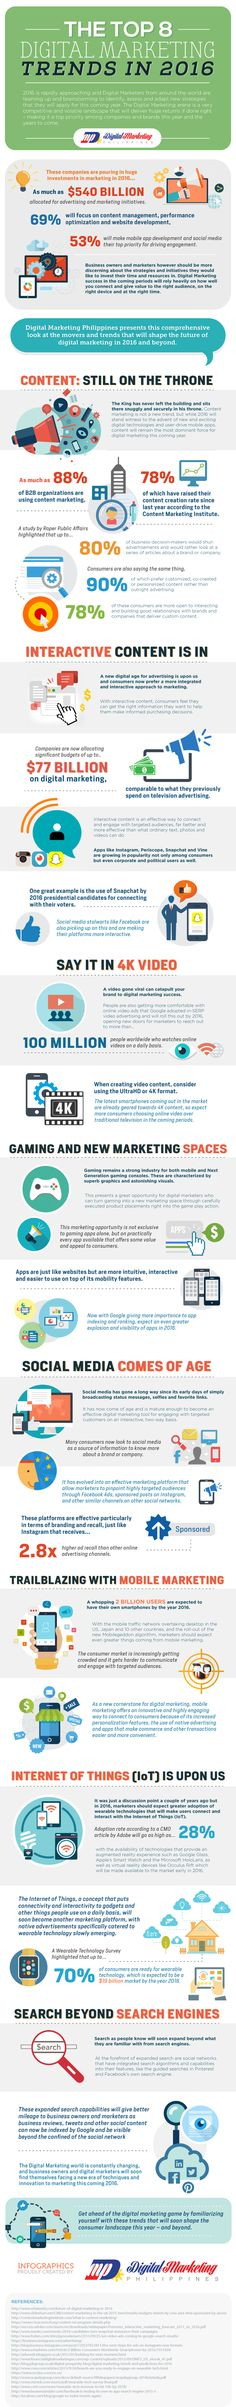 The Top 8 Digital Marketing Trends in 2016 (Infographic)